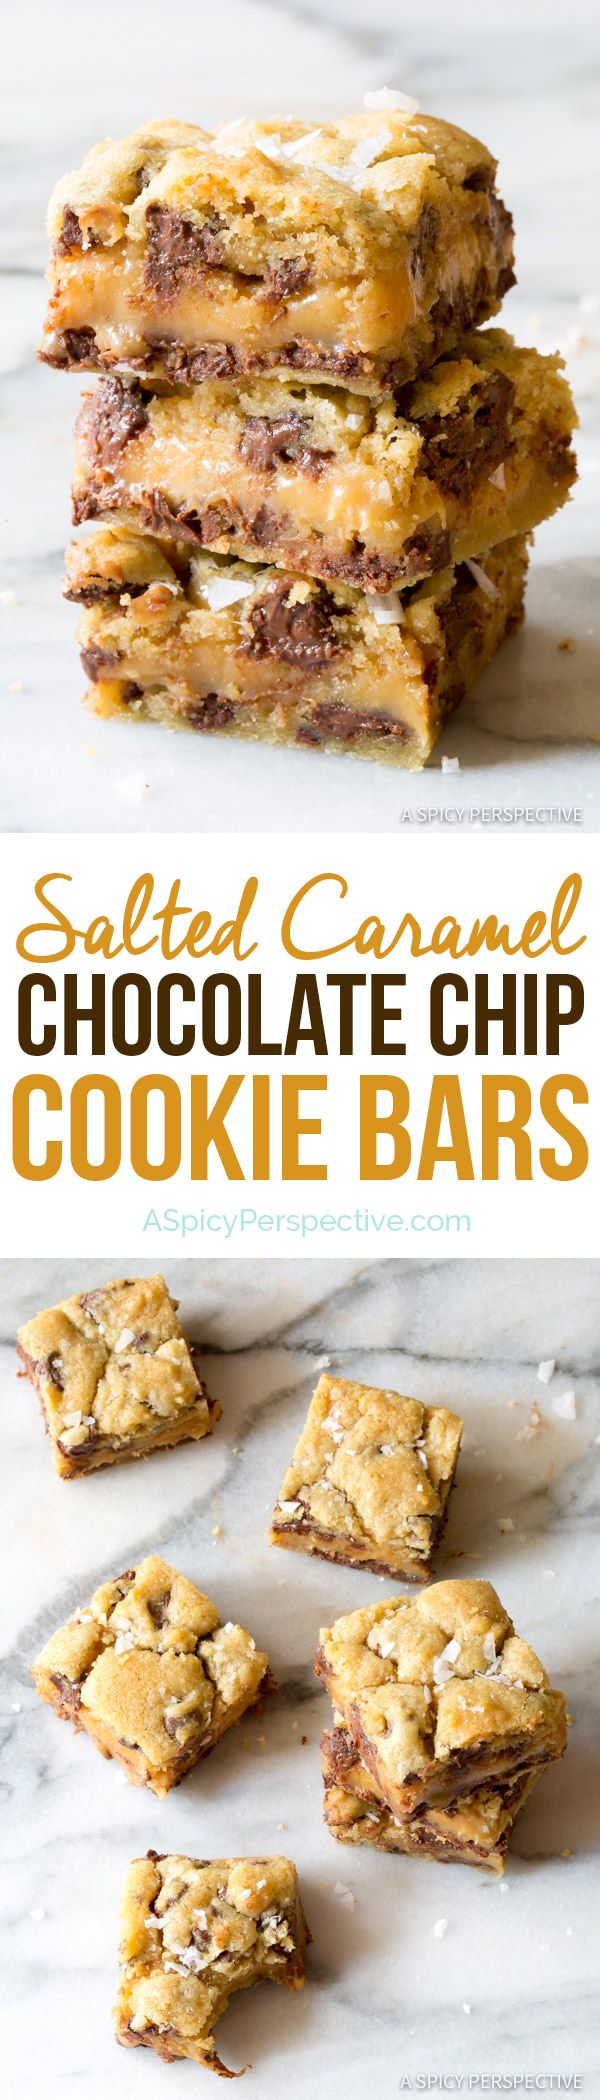 Irresistible Gooey Salted Caramel Chocolate Chip Cookie Bars | ASpicyPerspective.com